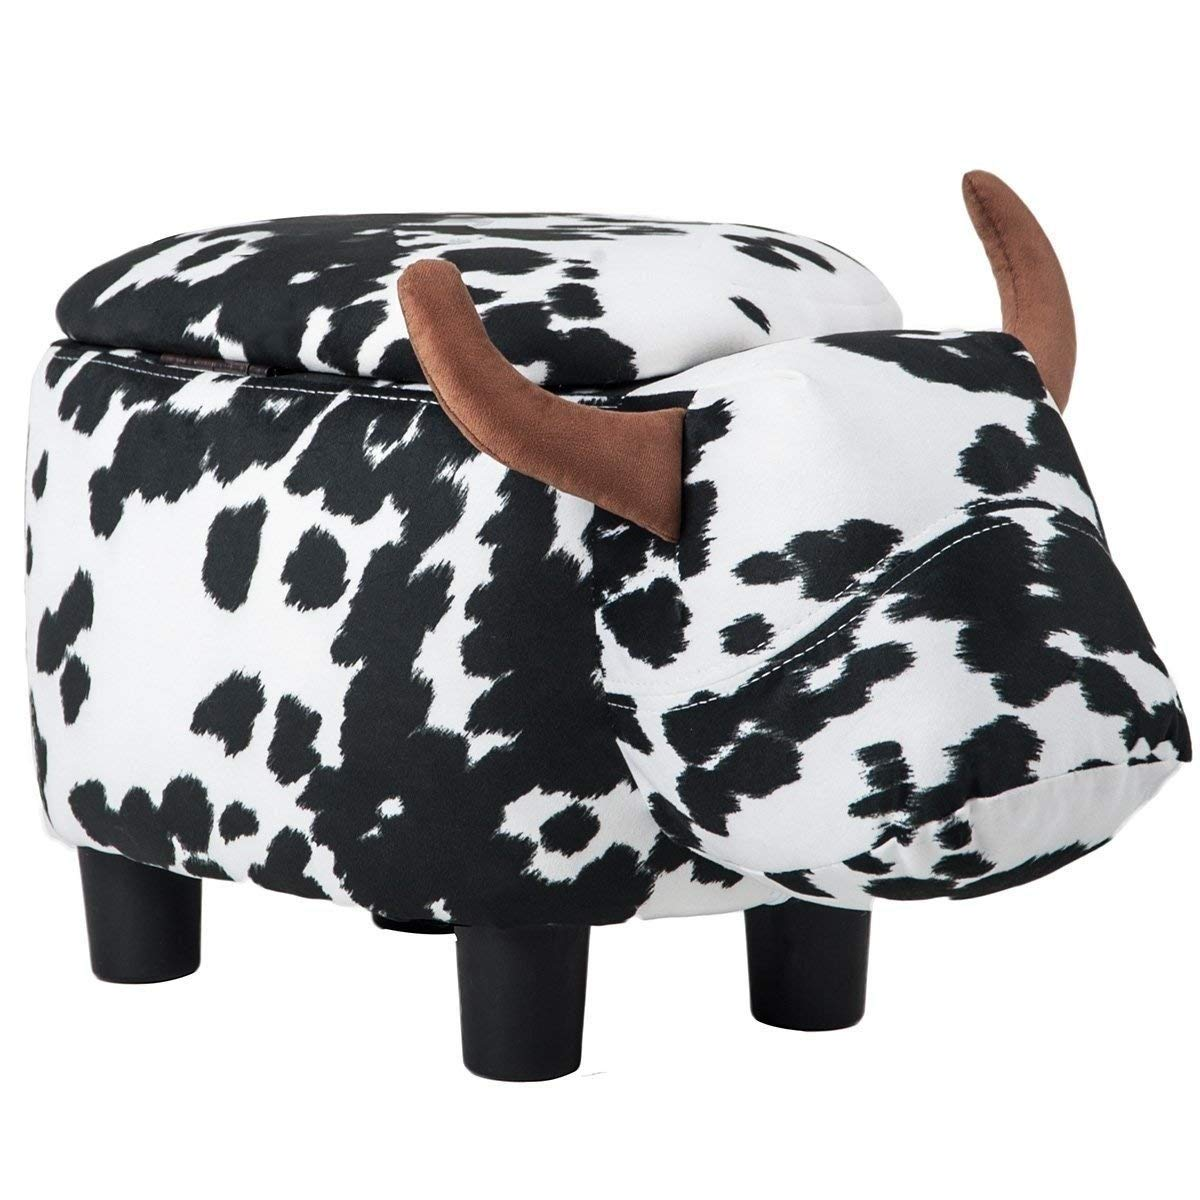 Merax Upholstered Ride-on Storage Animal Cow Ottoman Footrest Stool Black White Farmhouse Rustic Specialty Fabric by Unknown